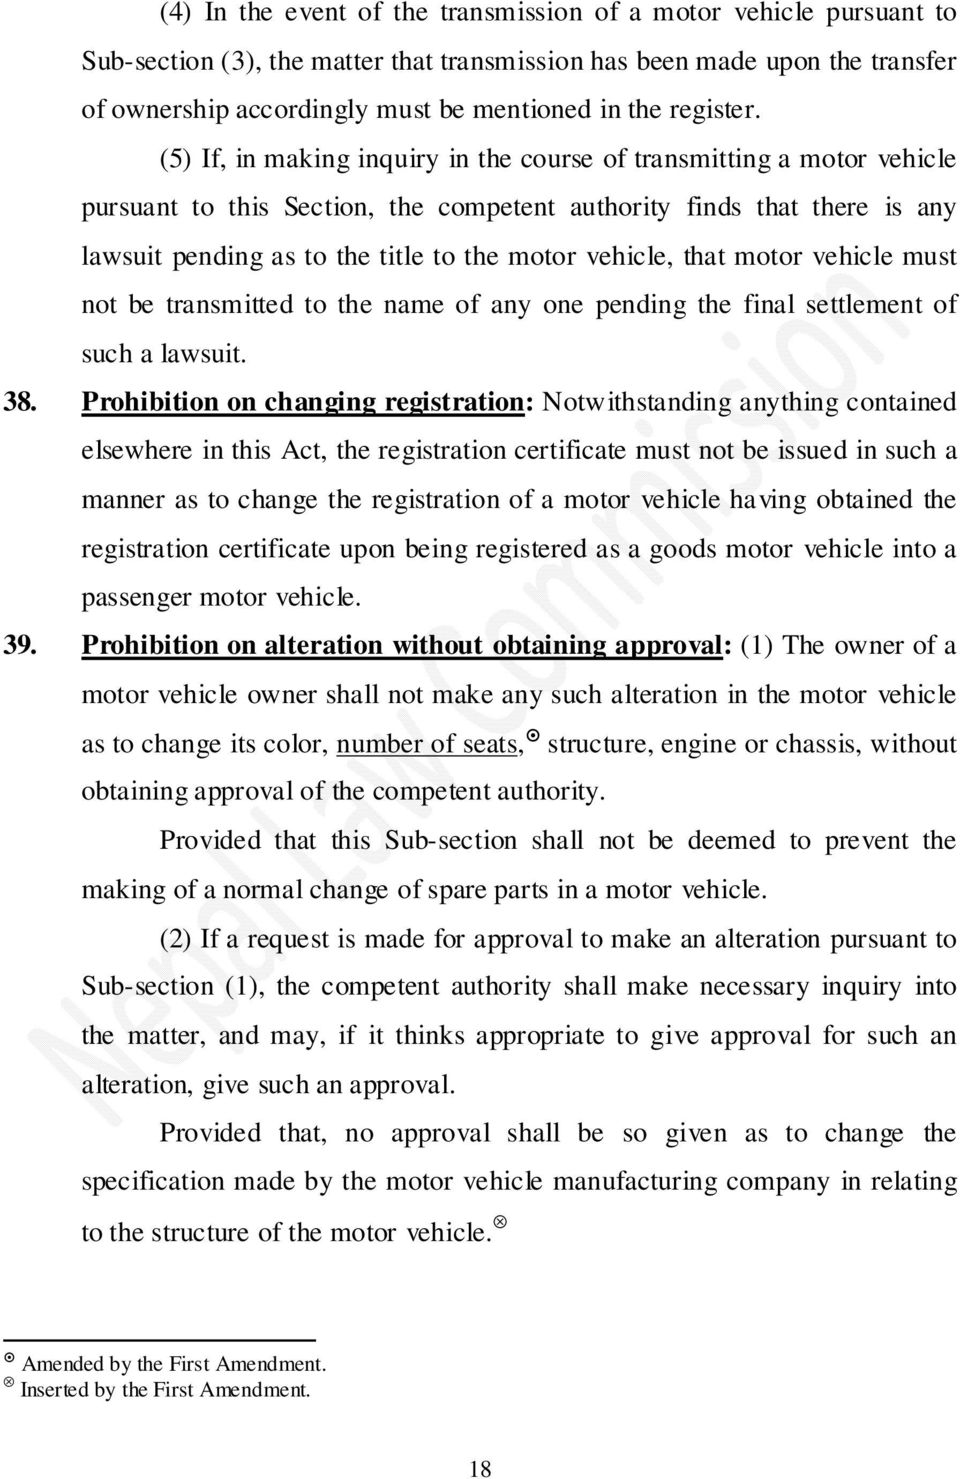 (5) If, in making inquiry in the course of transmitting a motor vehicle pursuant to this Section, the competent authority finds that there is any lawsuit pending as to the title to the motor vehicle,